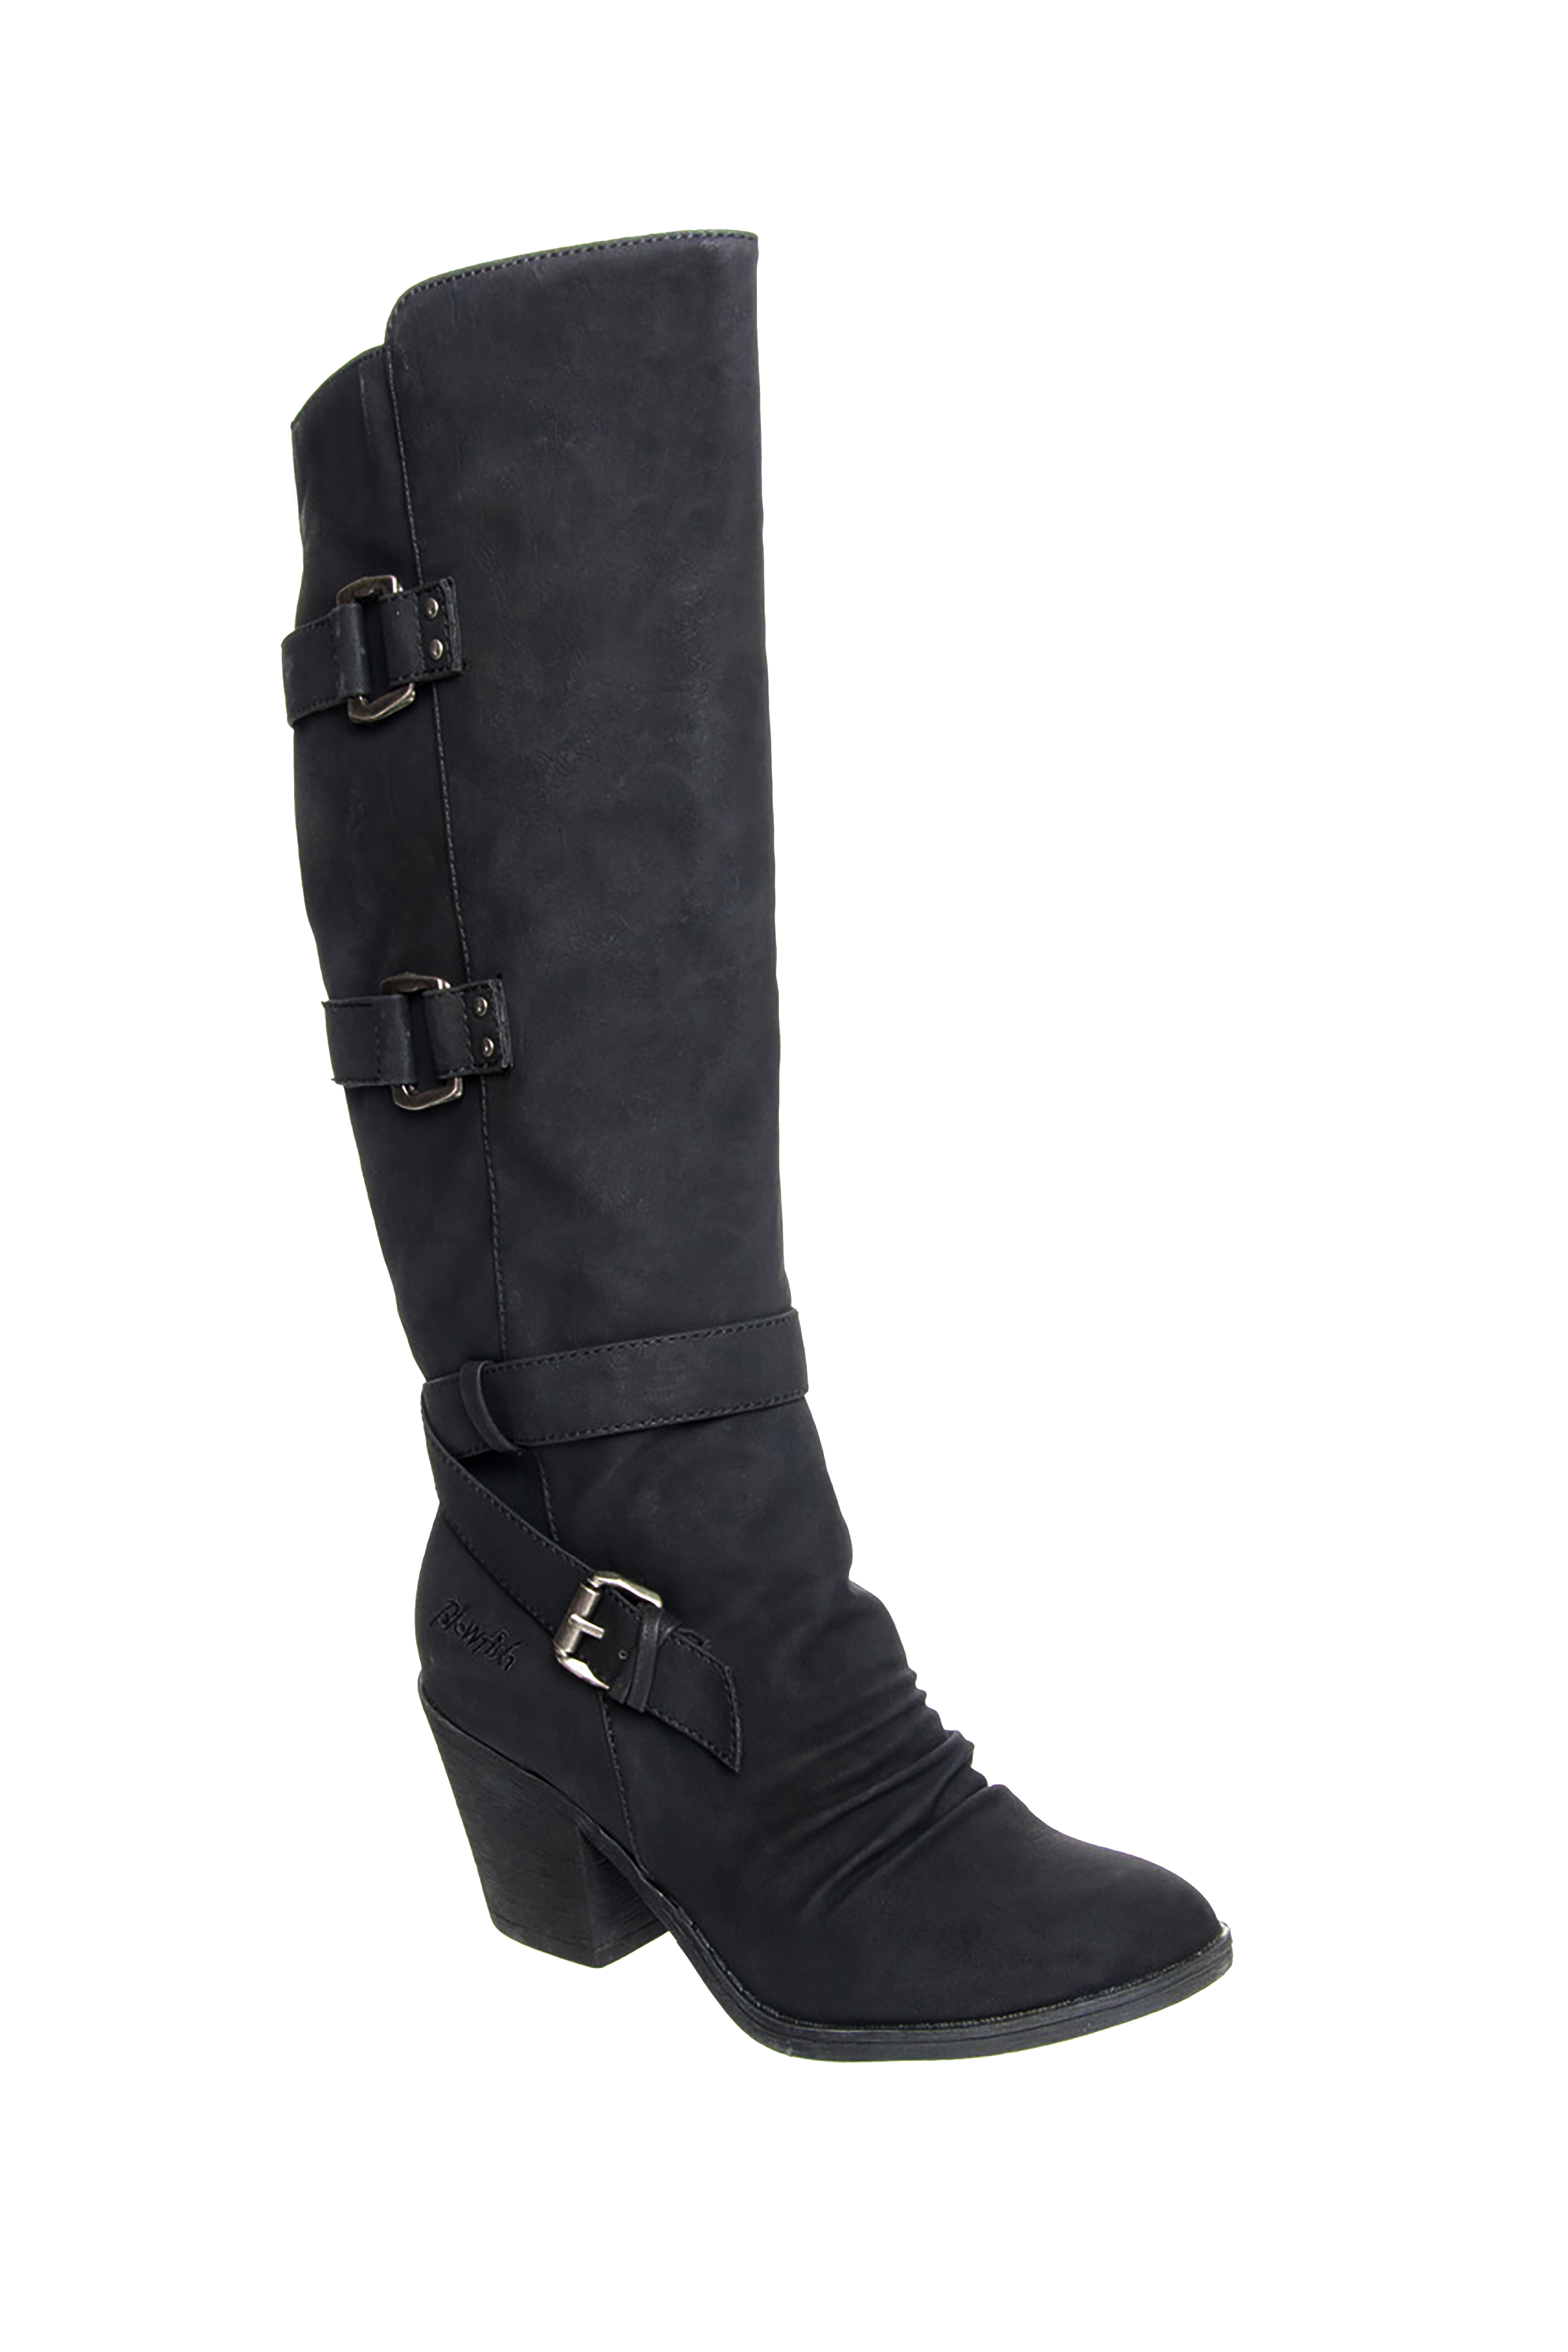 Blowfish Stay Knee High Boots - Black